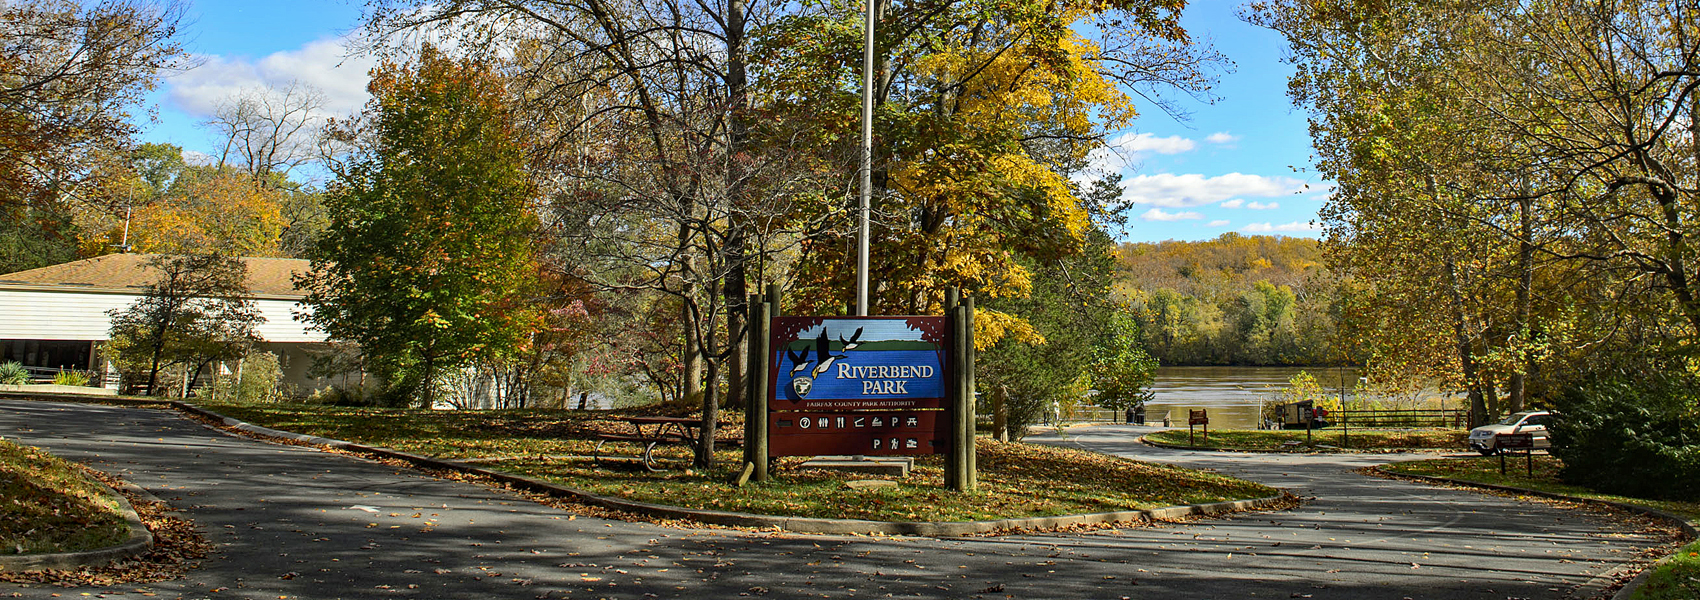 The entrance to Riverbend Park's visitor center area